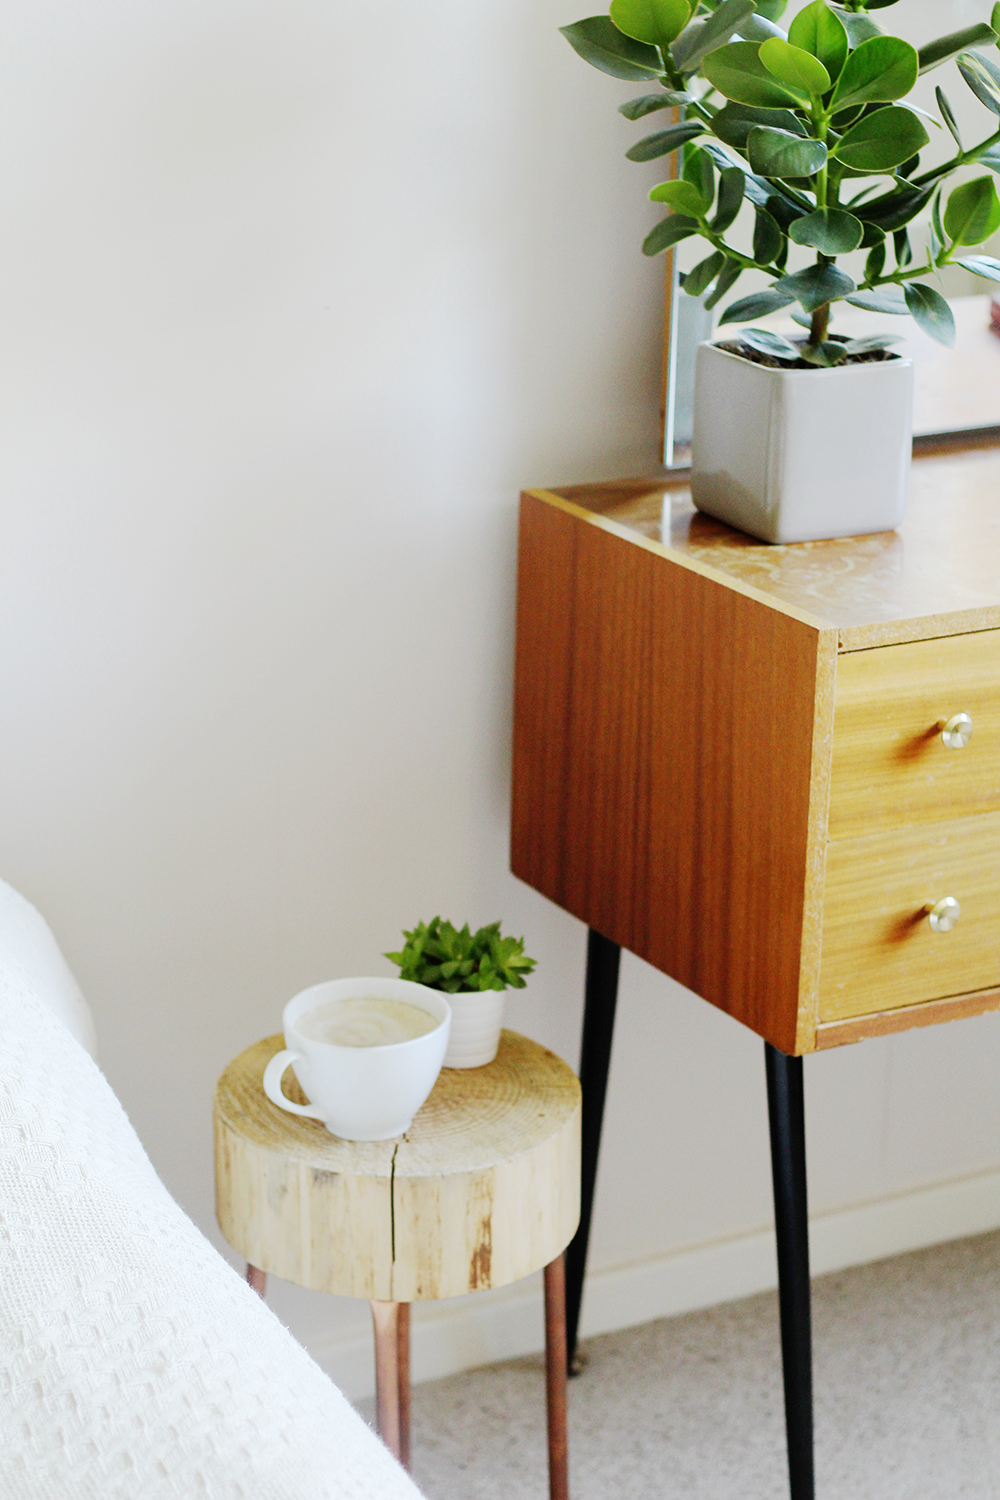 diy copper pipe and wood slice side table | fall for diy Nightstand Ideas for Small Spaces